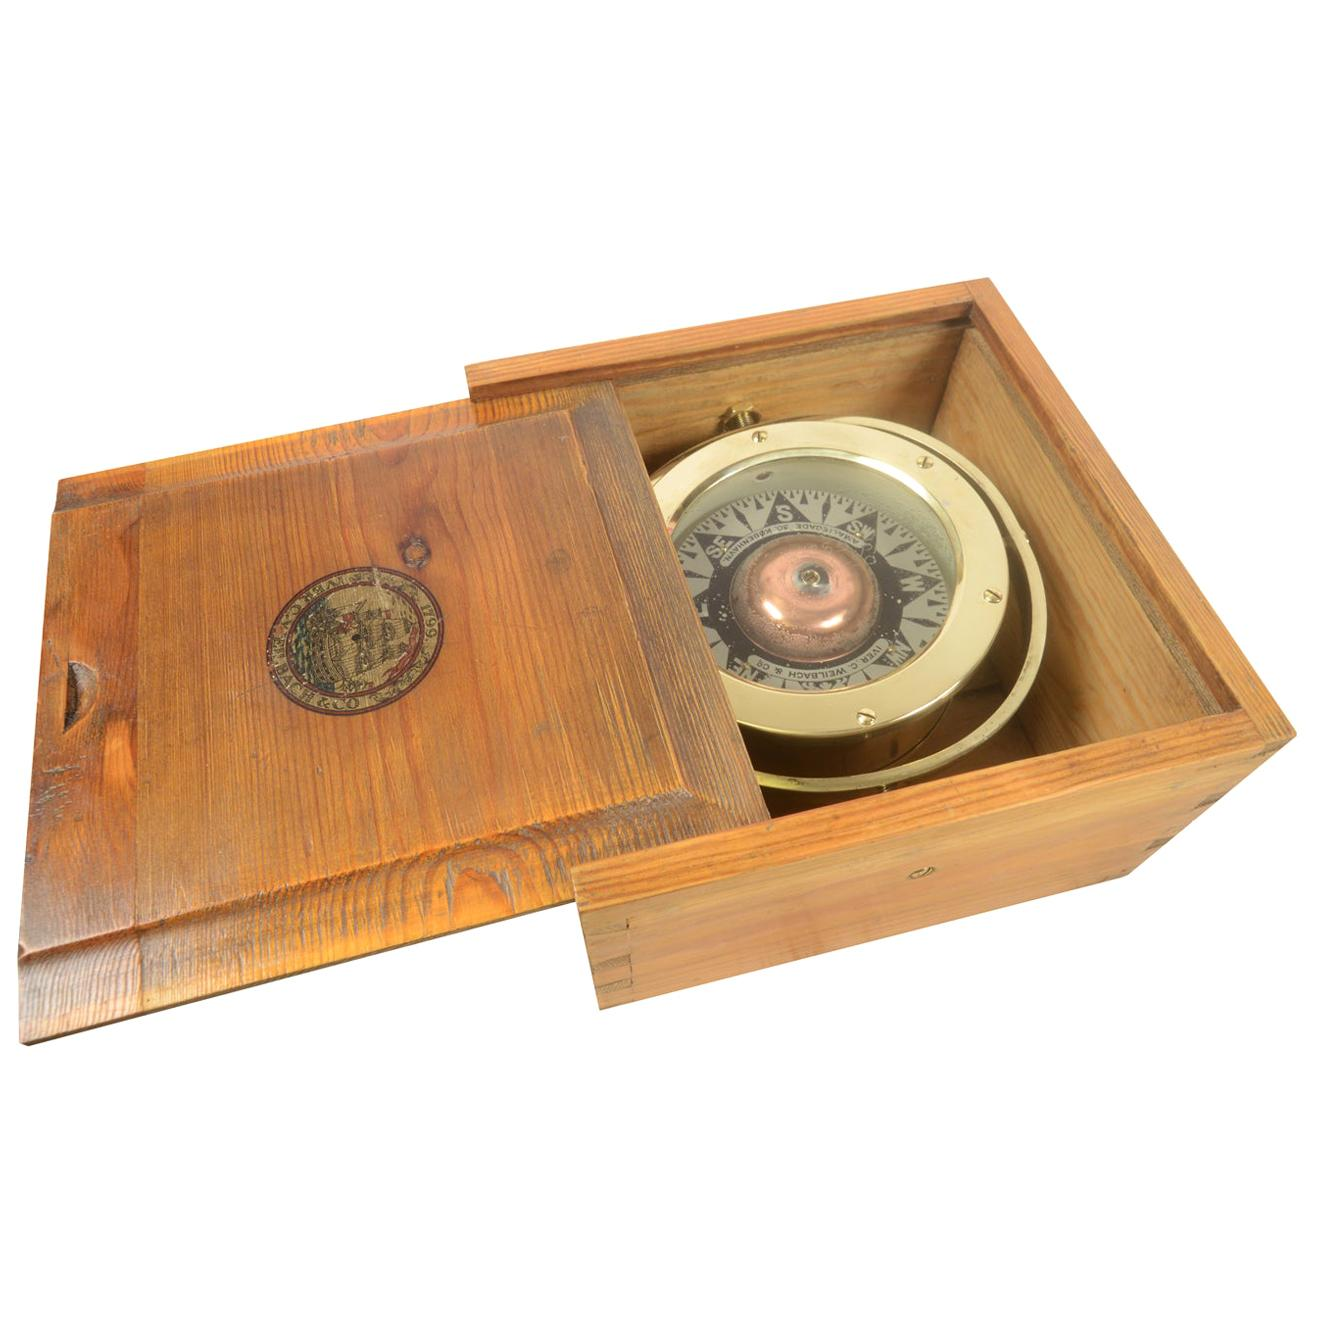 Danish Brass Compass in its Original Wooden Box, 1920s-1930s